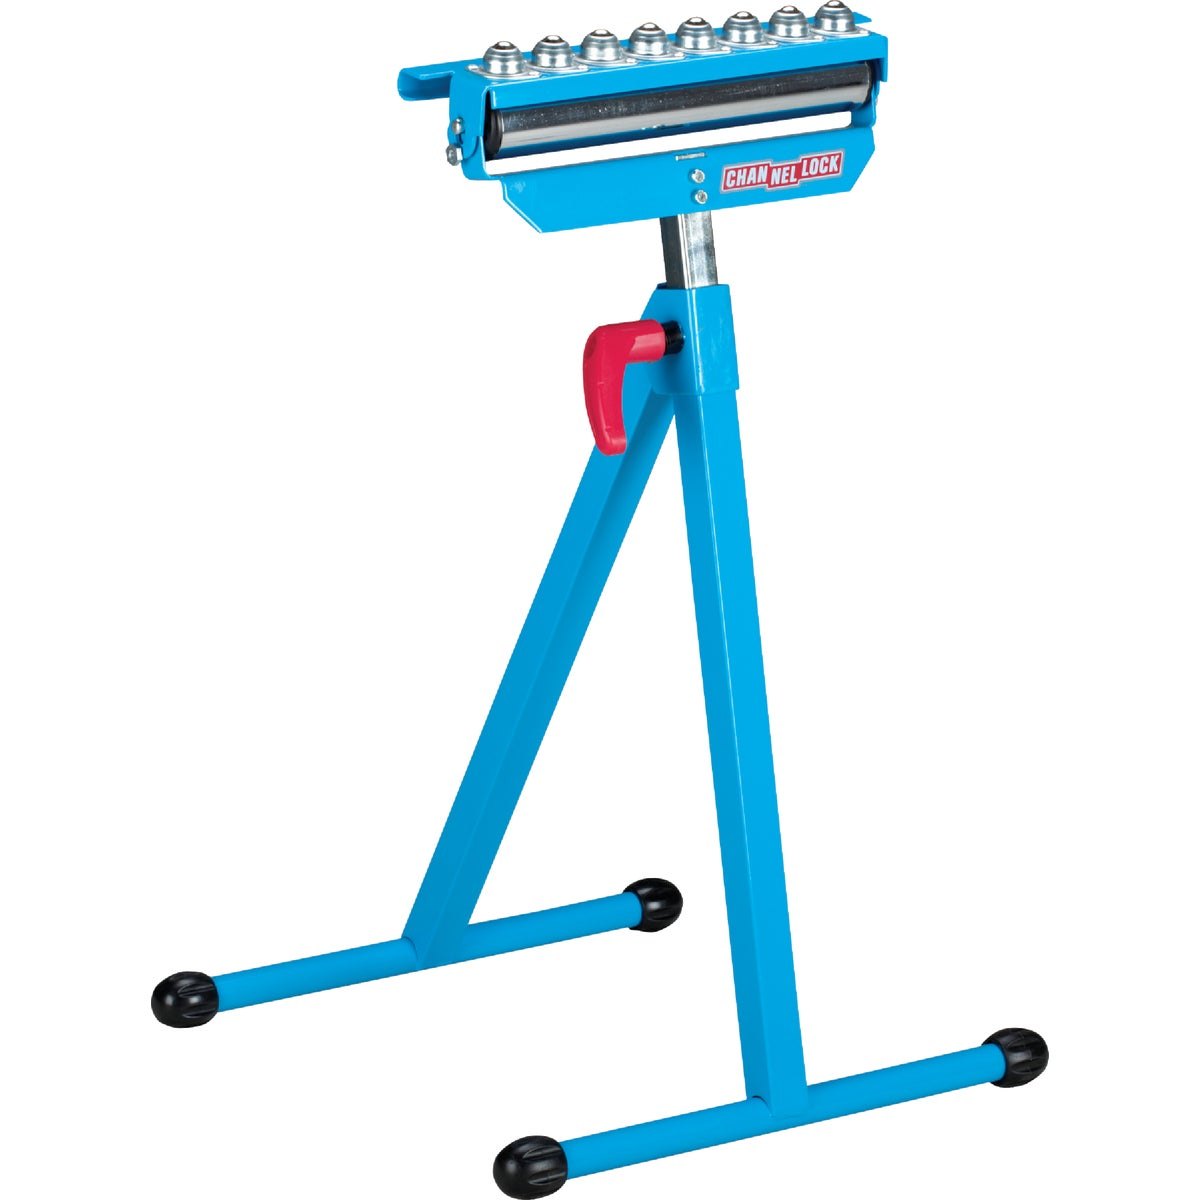 Channellock Licensed Prod TRI-FUNCTION WORK STAND YH-RS007